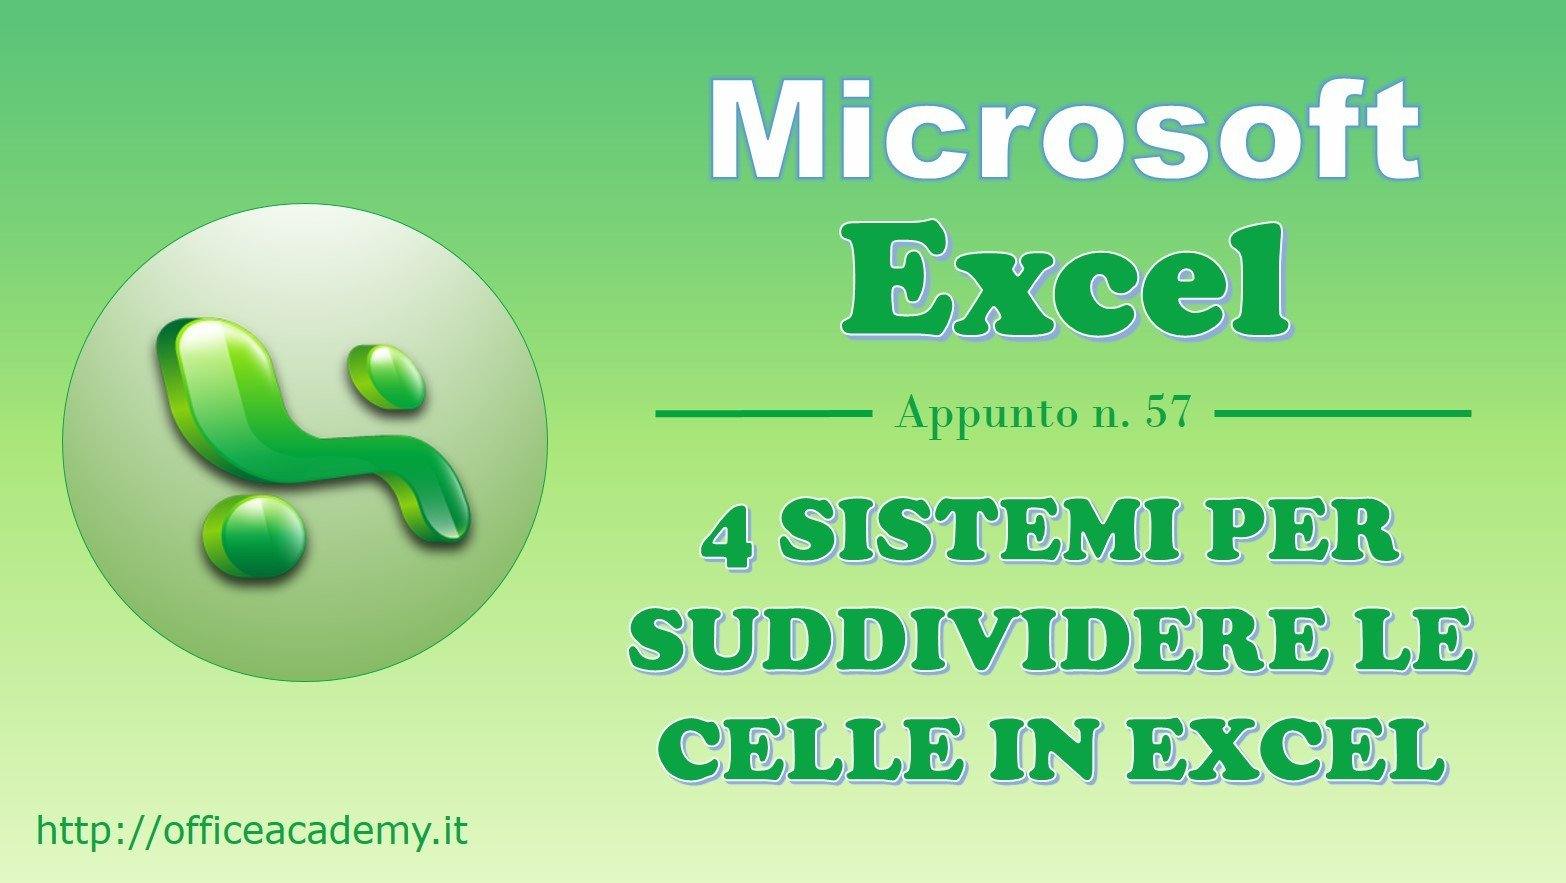 4 sistemi per suddividere le celle in Excel